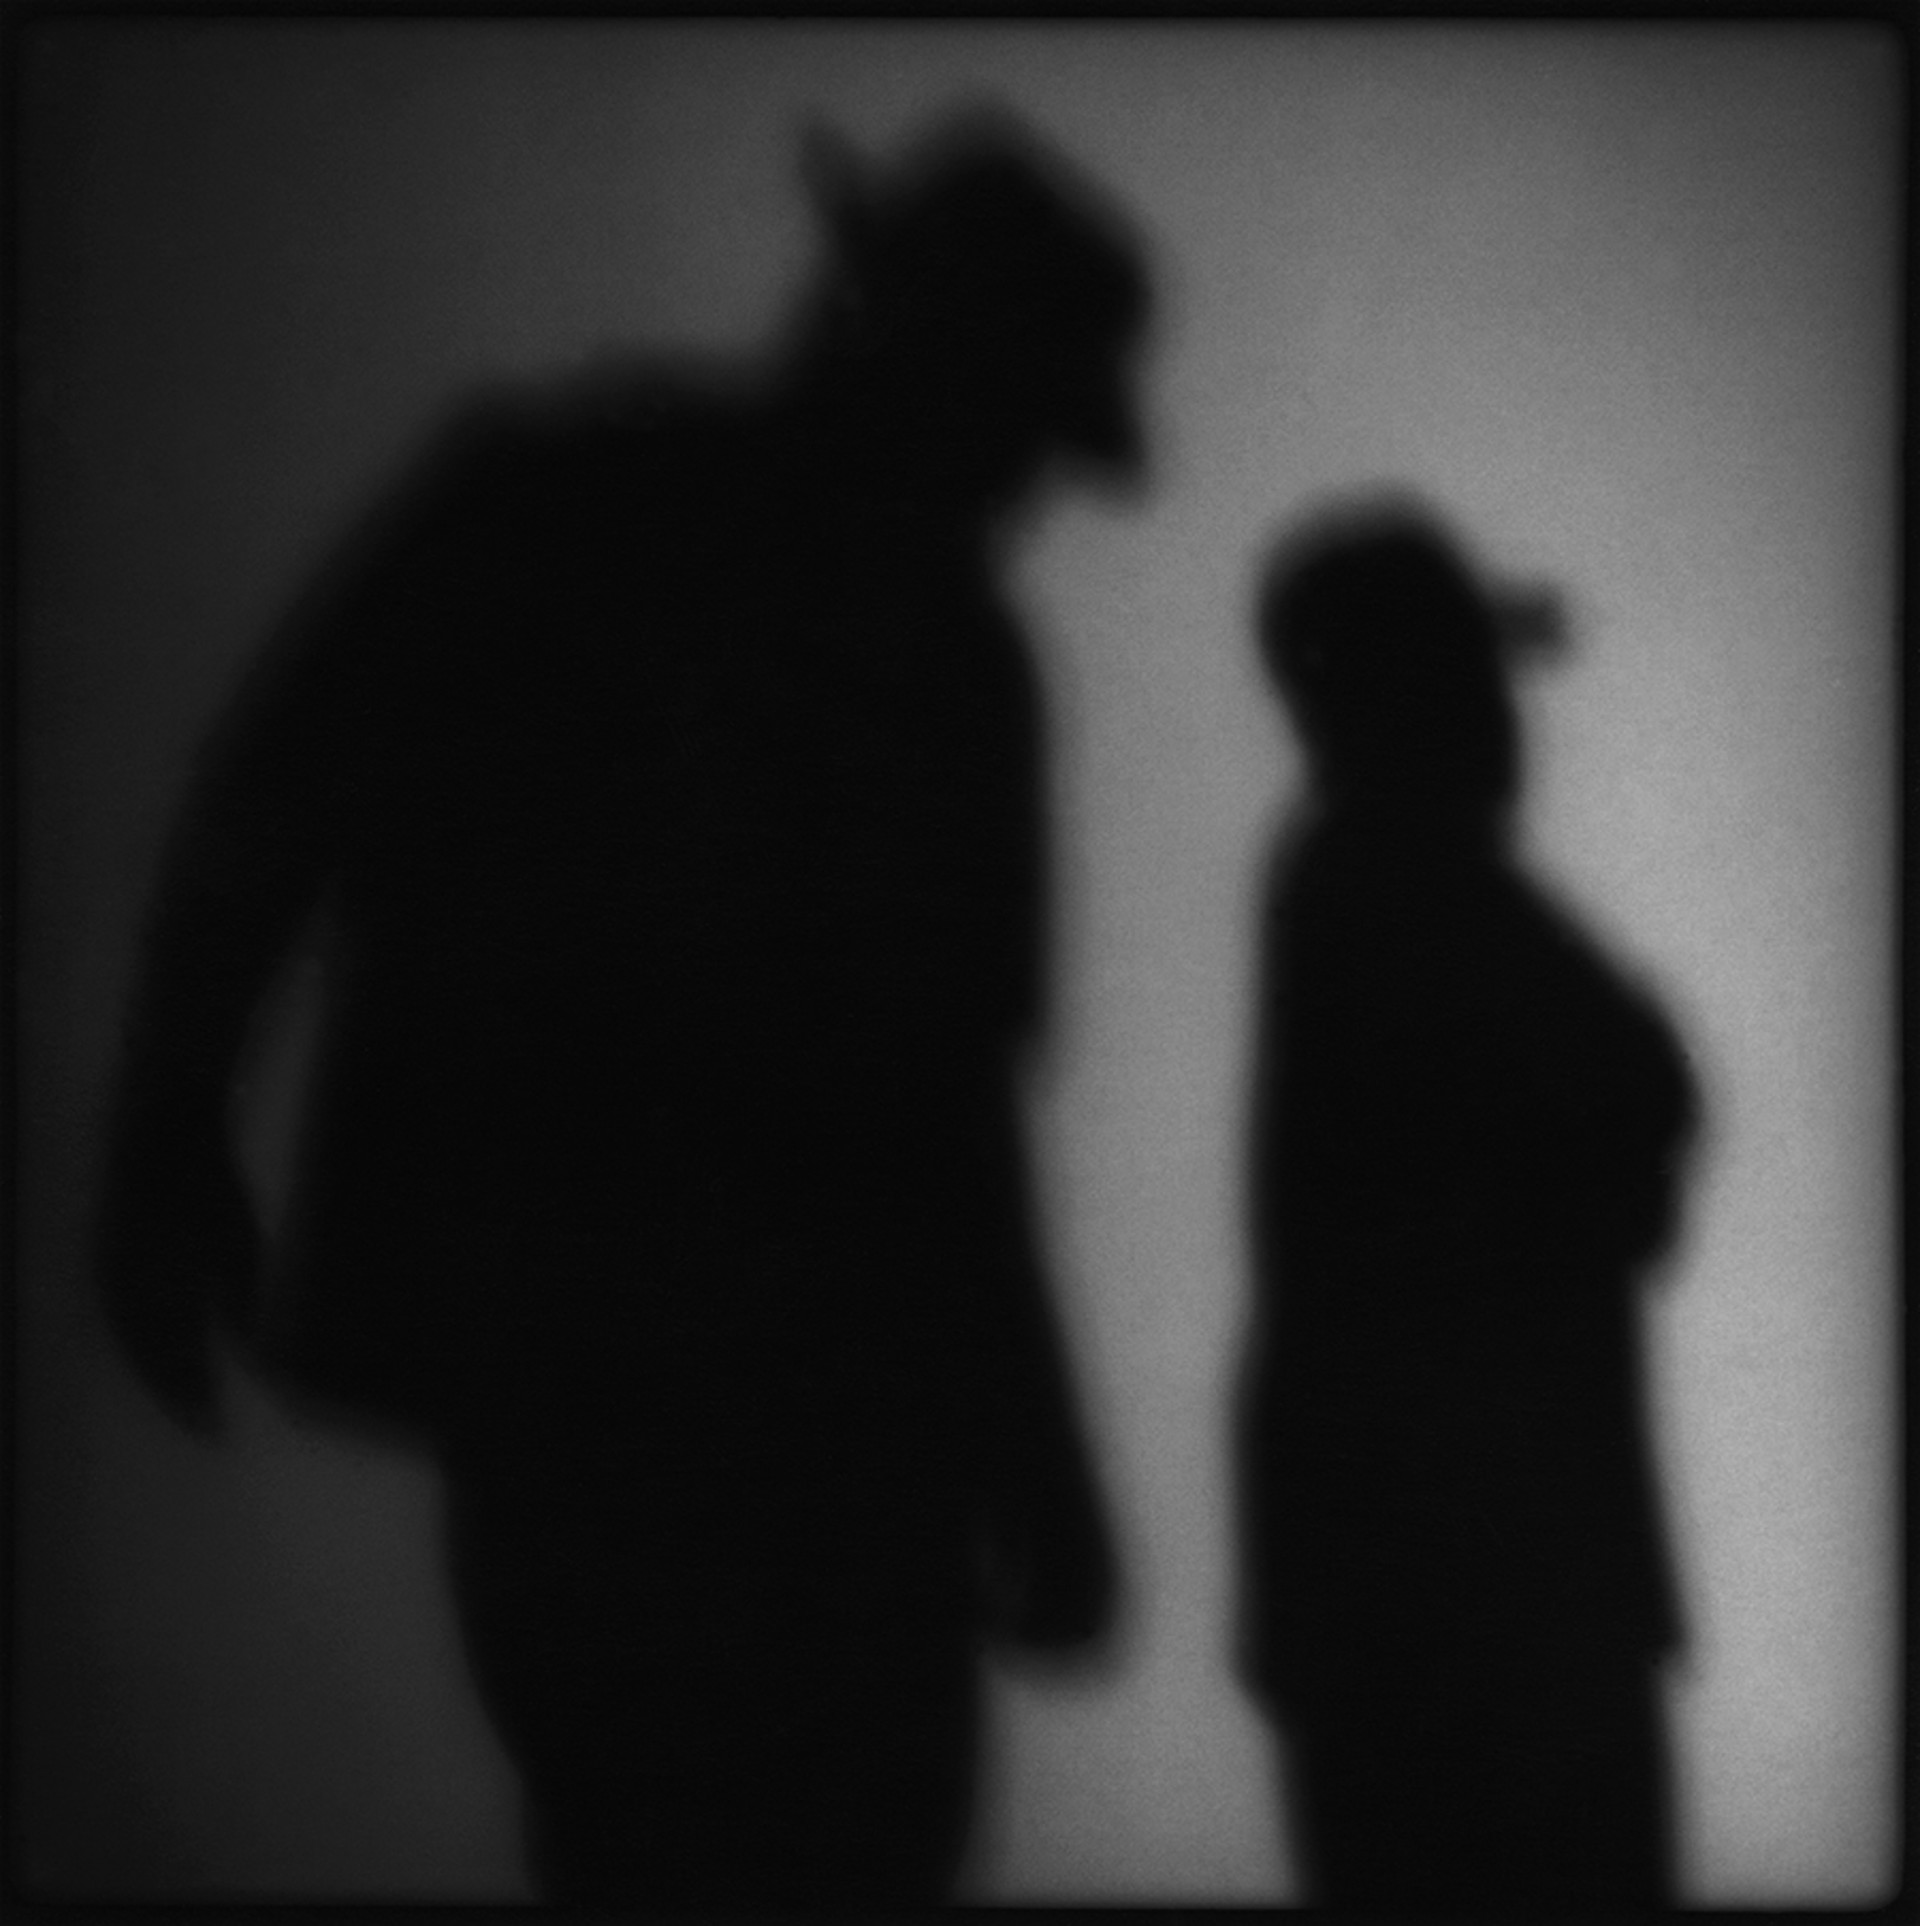 94026 Outkast Shadows BW, 1994 by Timothy White